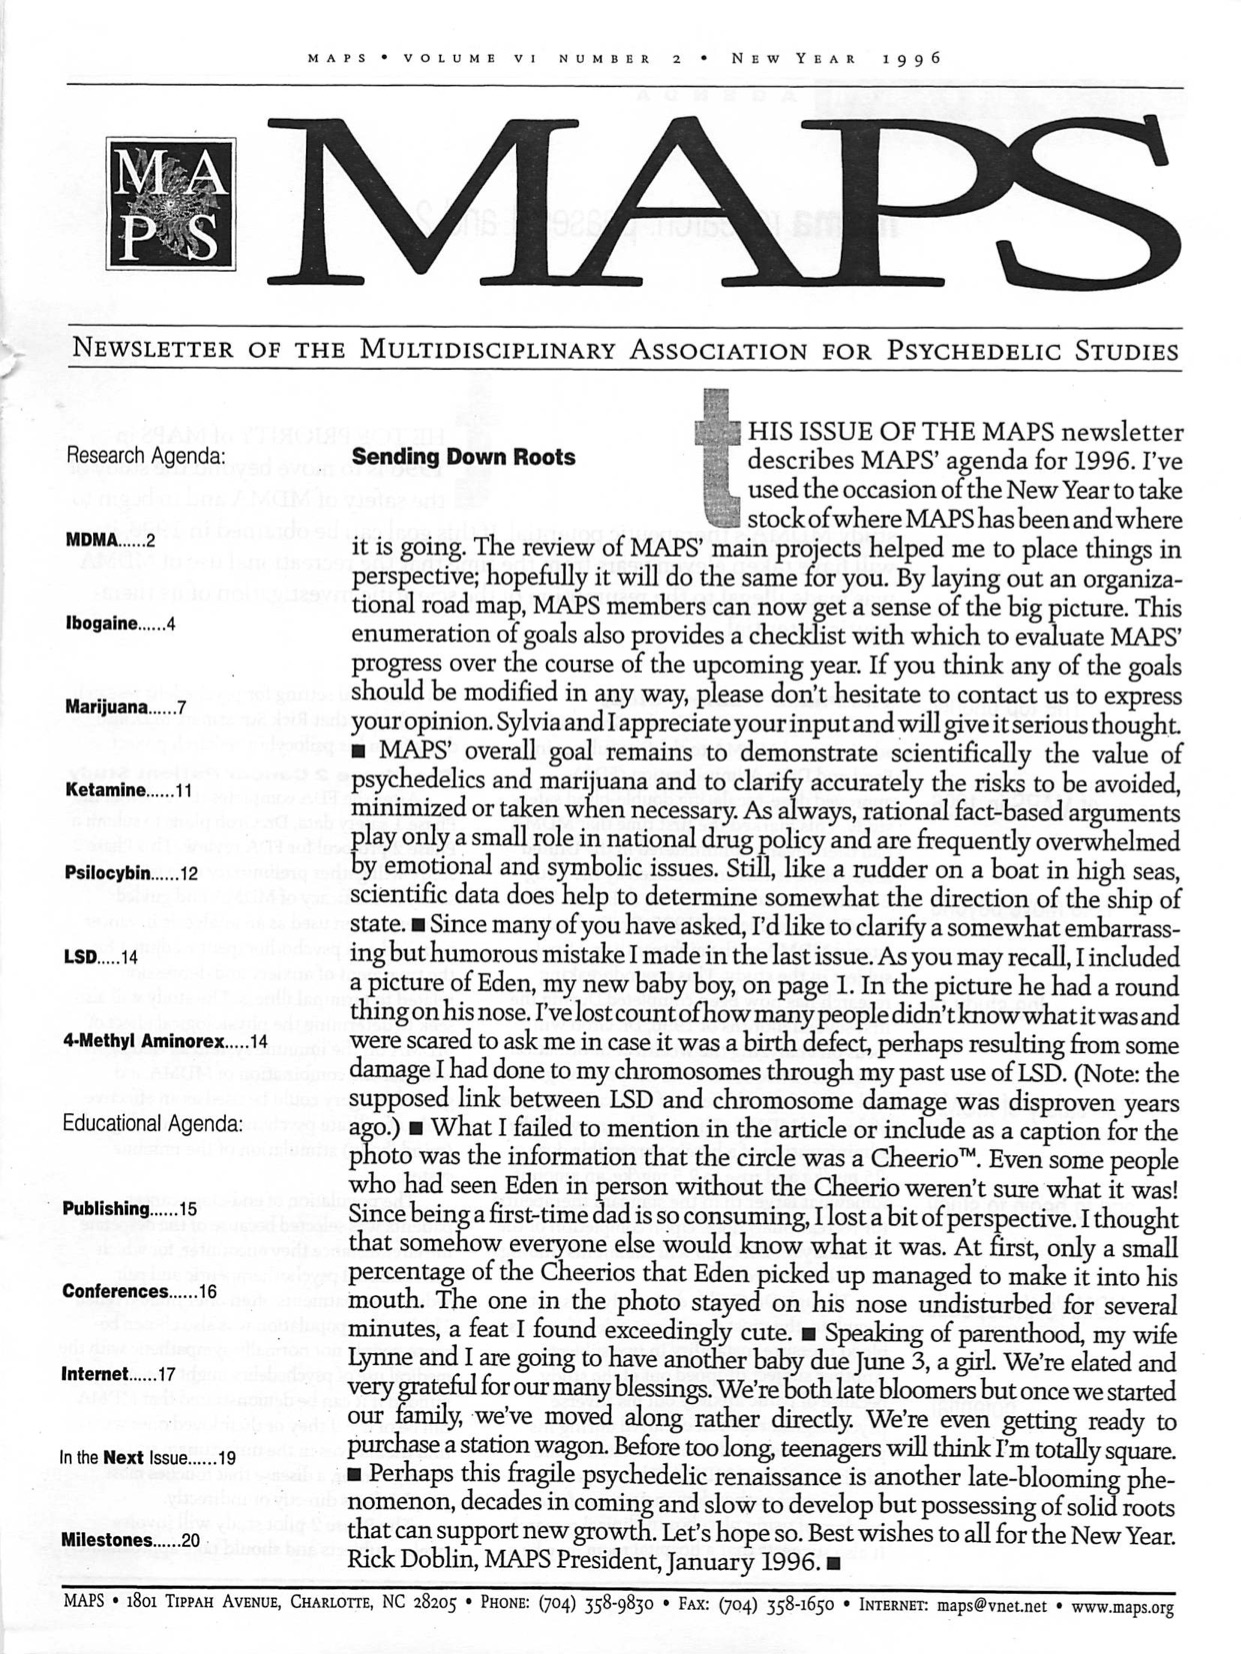 MAPS Bulletin Winter 1996: Vol. 06, No. 2